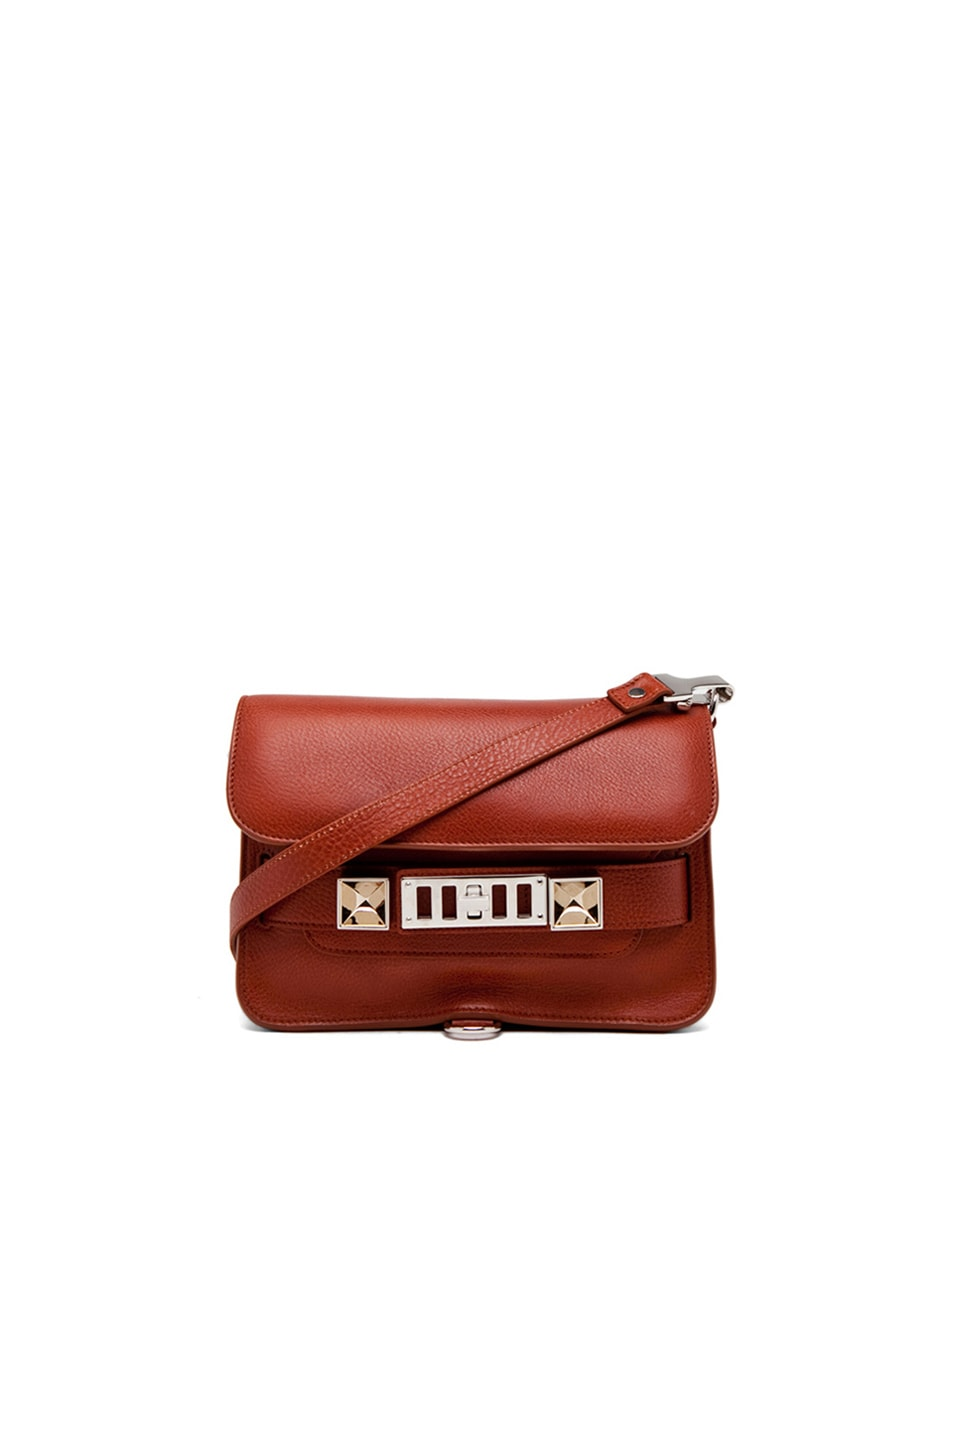 Image 1 of Proenza Schouler Mini PS11 Classic Bag in Saddle